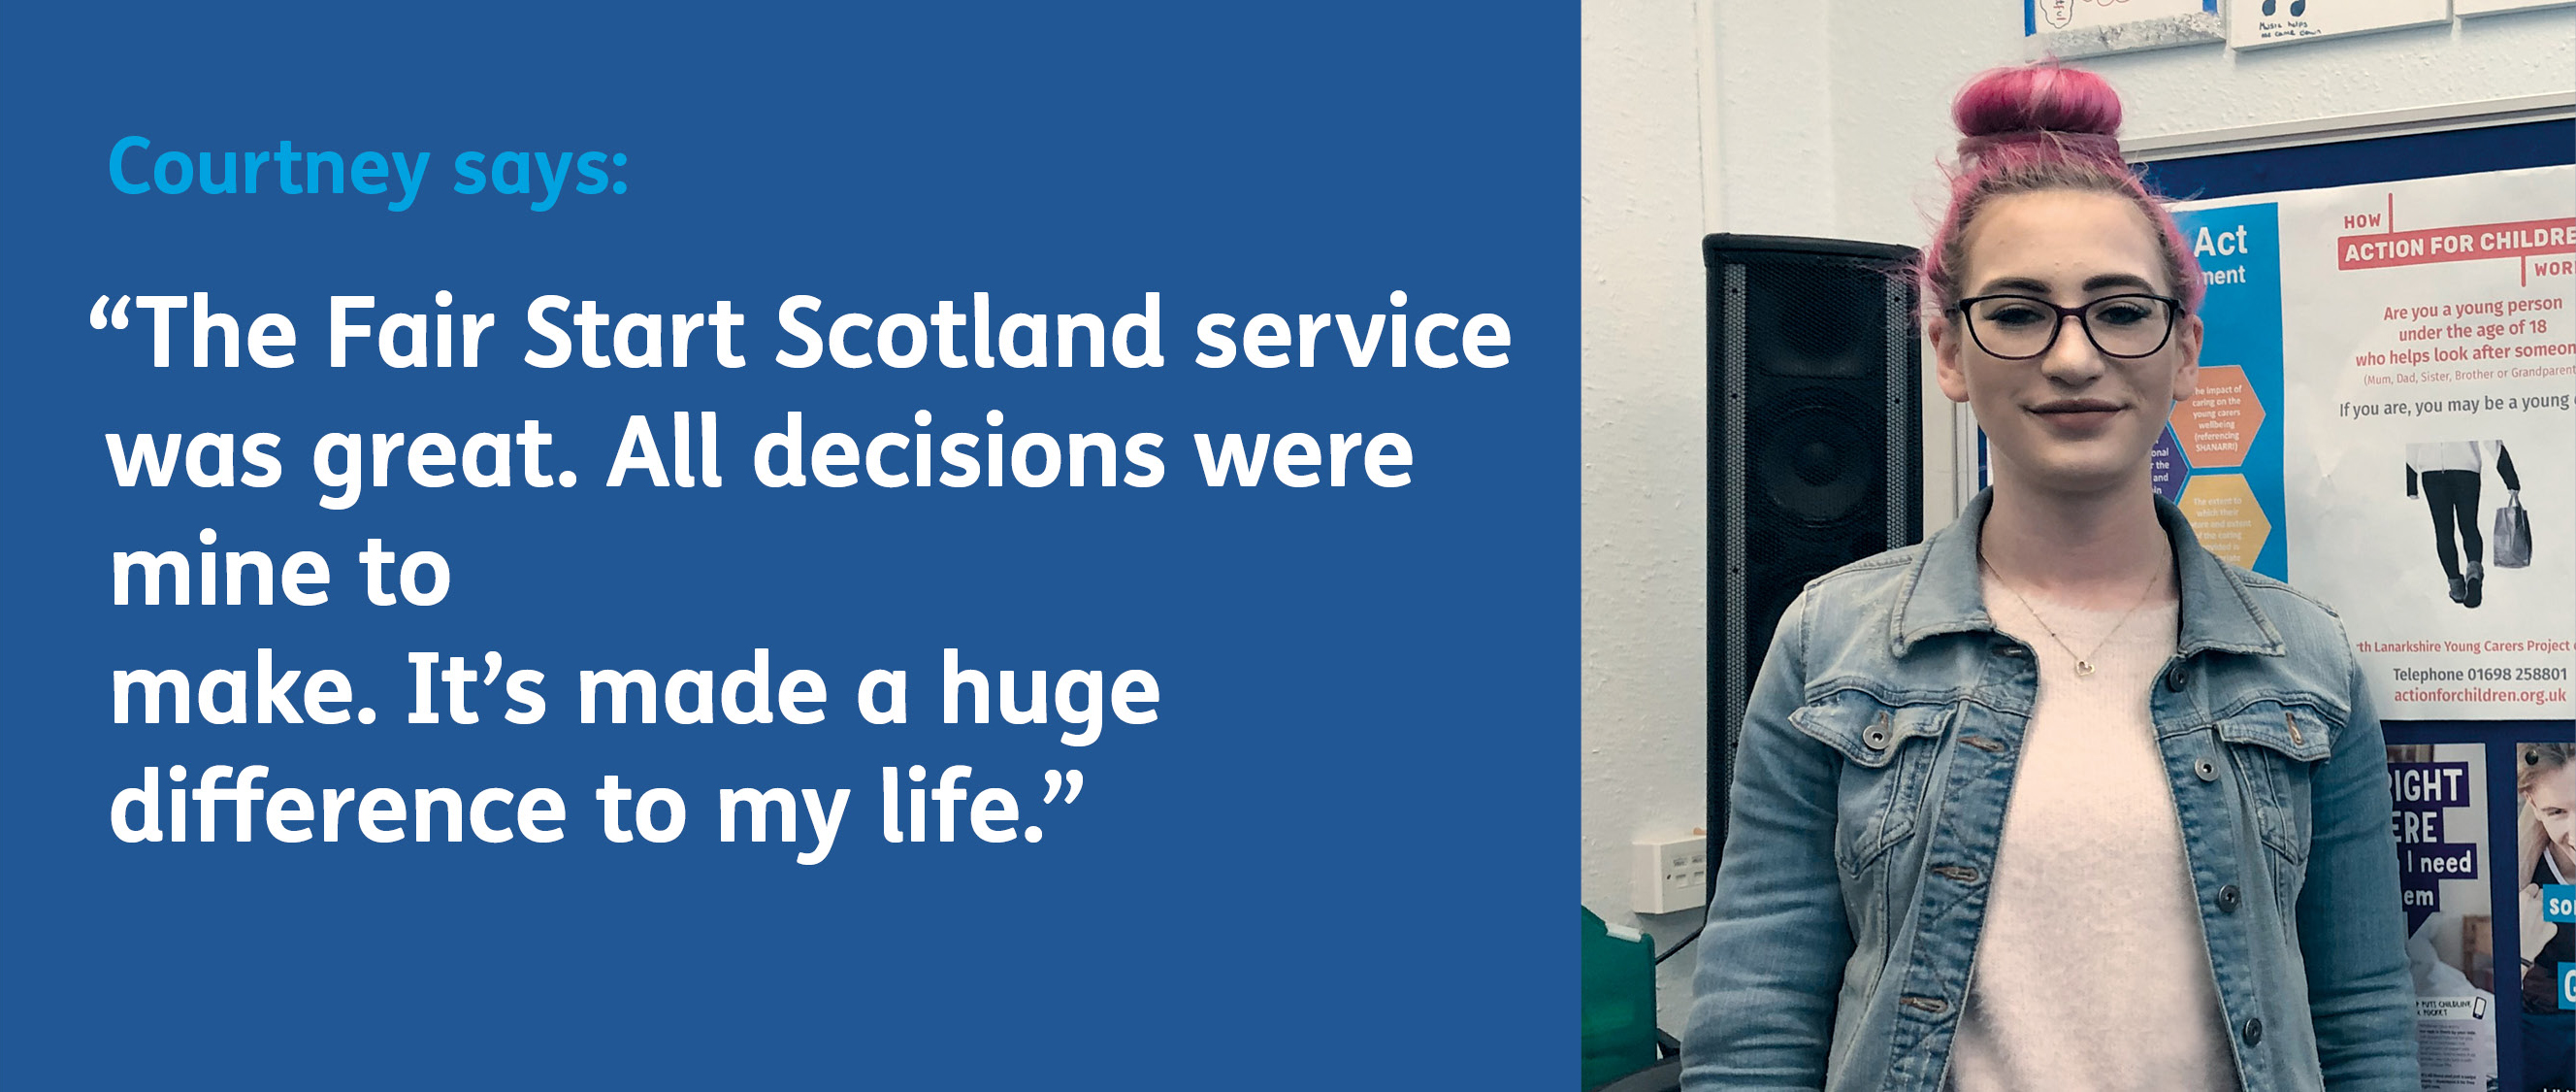 Courtney says: The Fair Start Scotland service was great. All decisions were mine to make. It has made a huge difference to my life